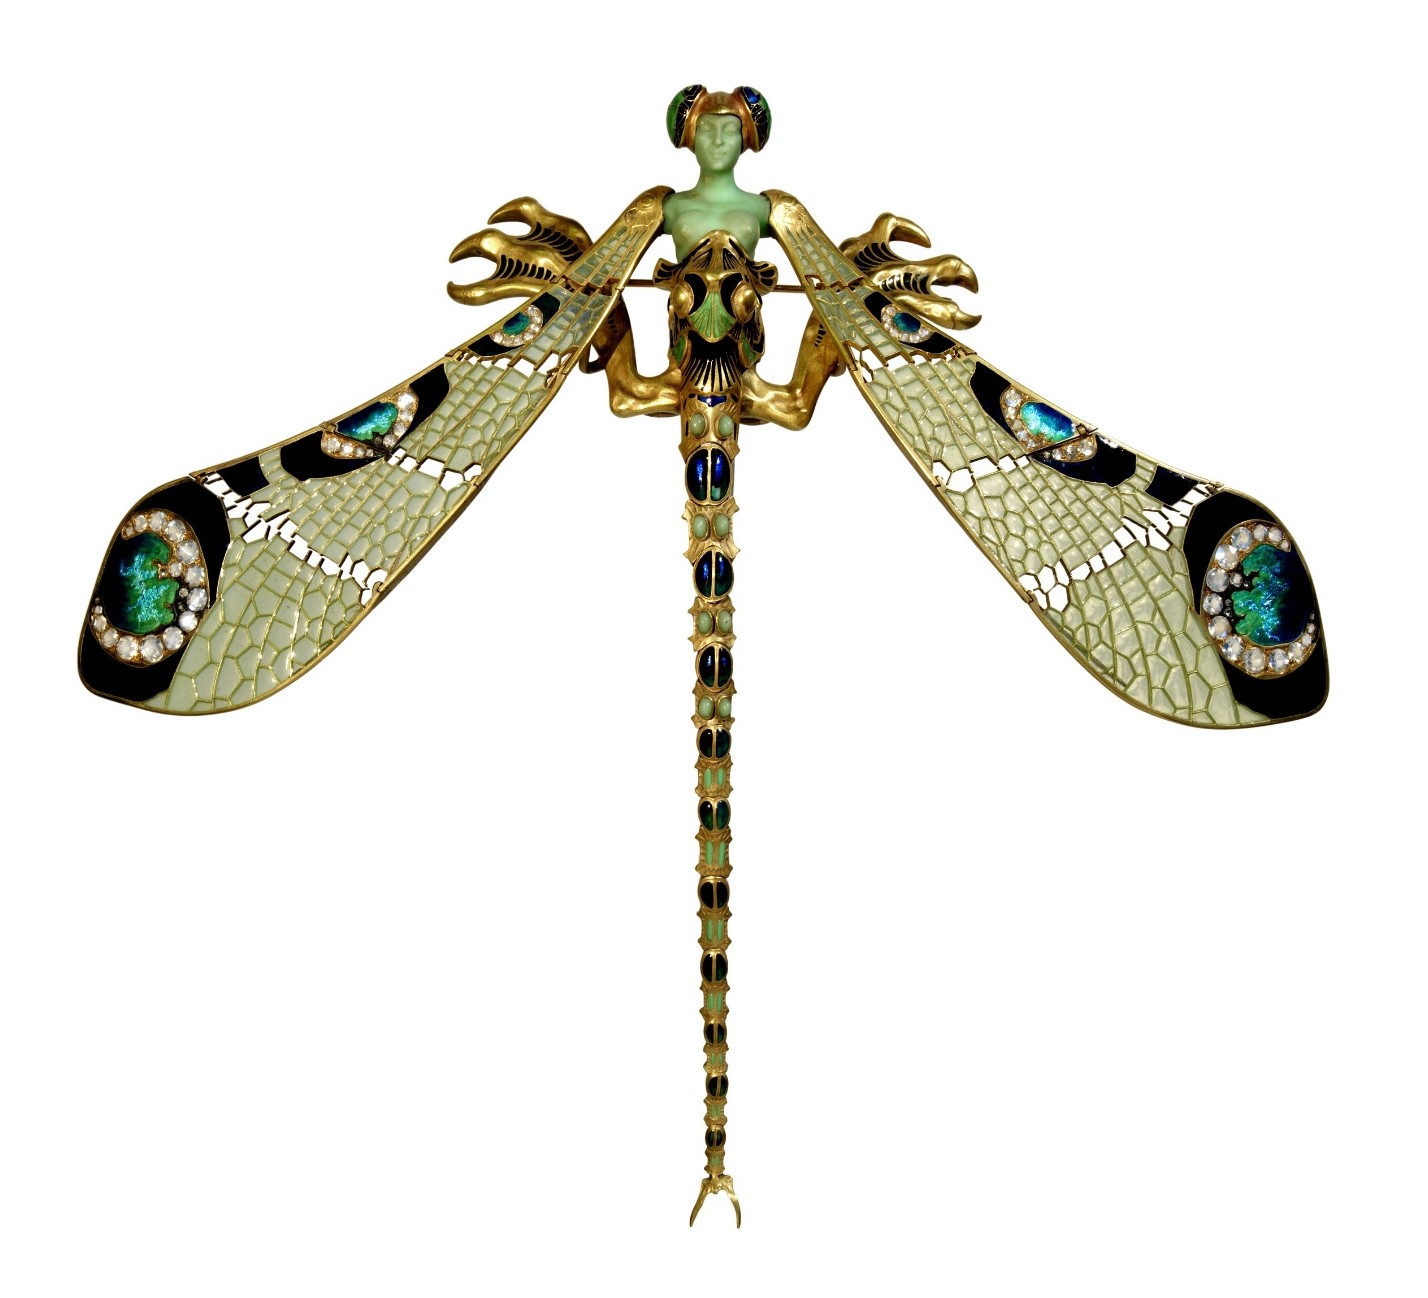 Large Corsage Ornament in the Form of a Dragonfly